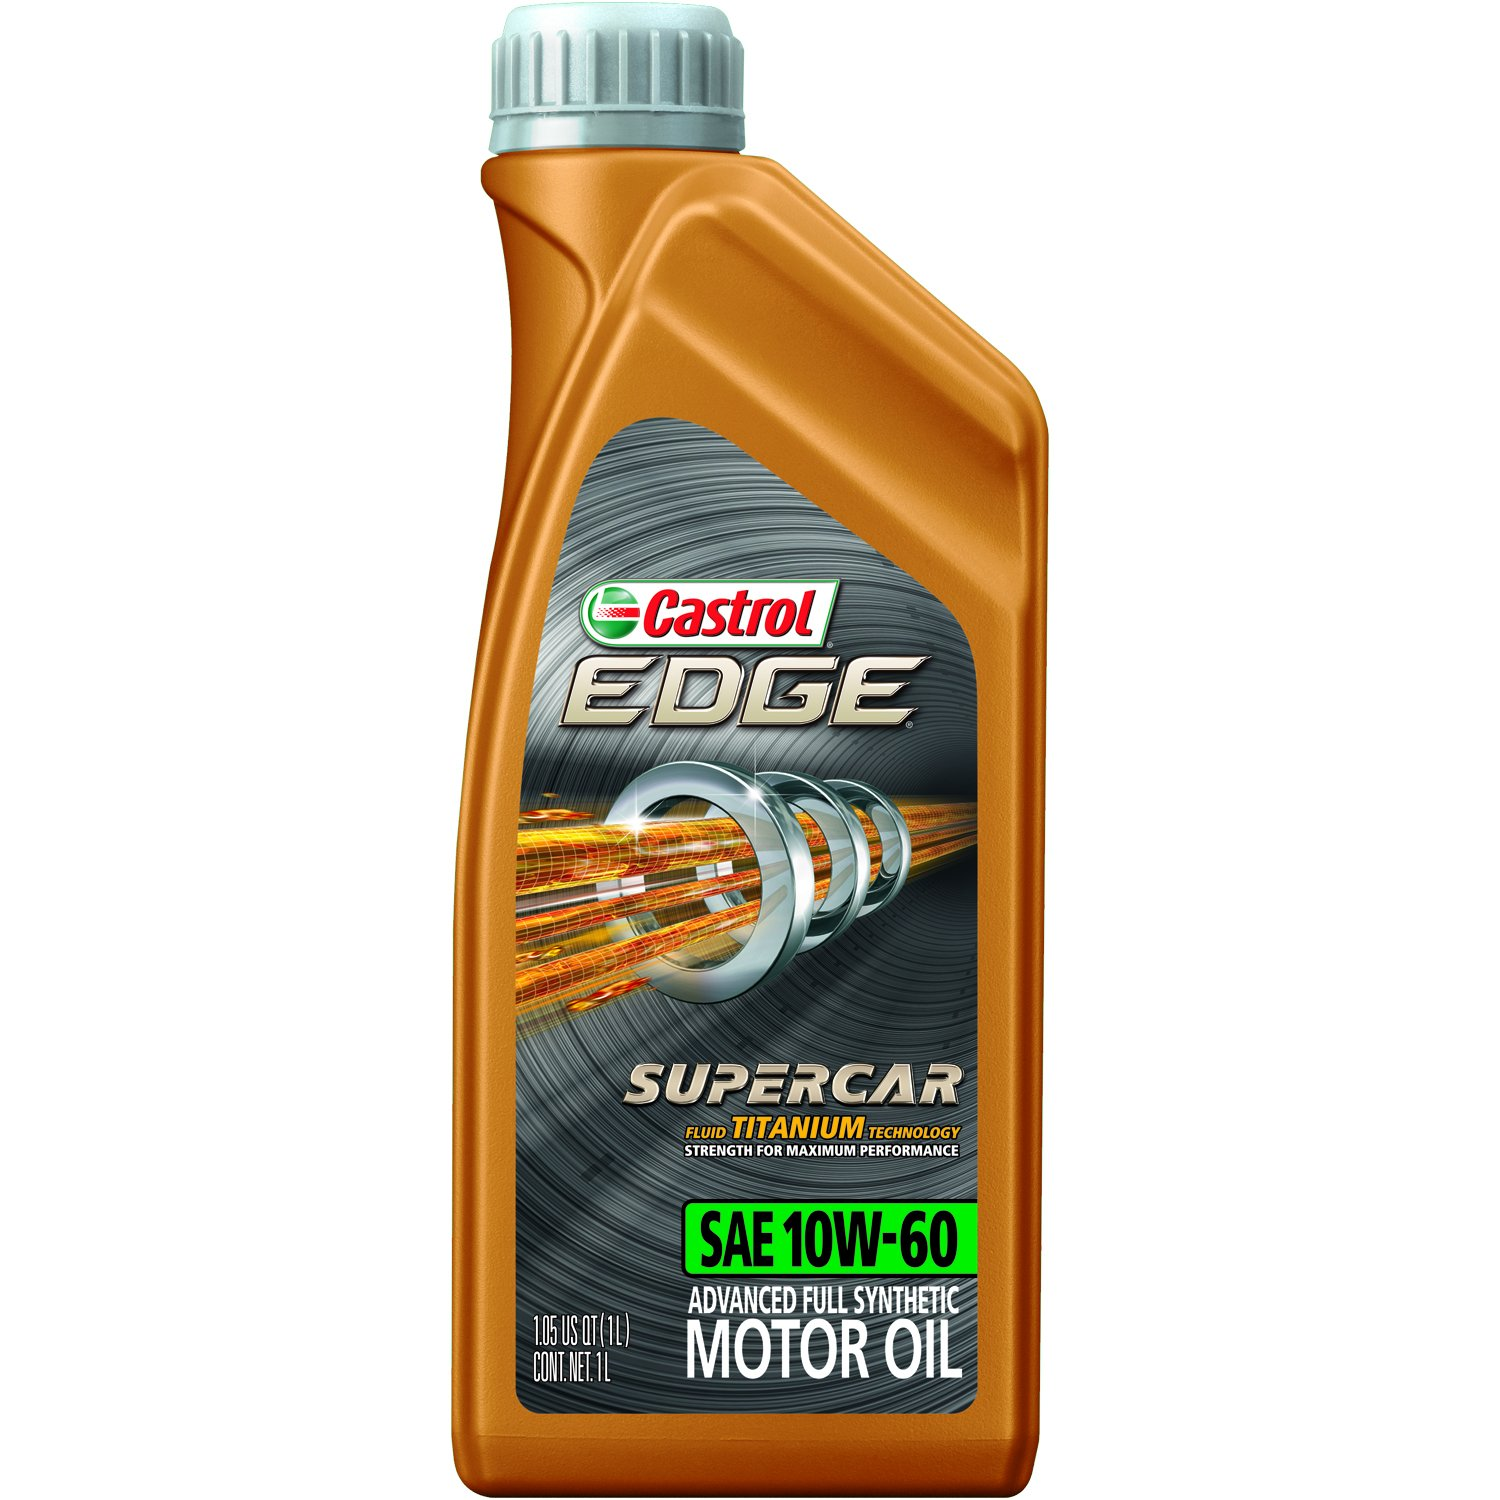 Castrol 12064 EDGE SUPERCAR 10W-60 Advanced Full Synthetic Motor Oil, 1 L, 12 pack by Castrol